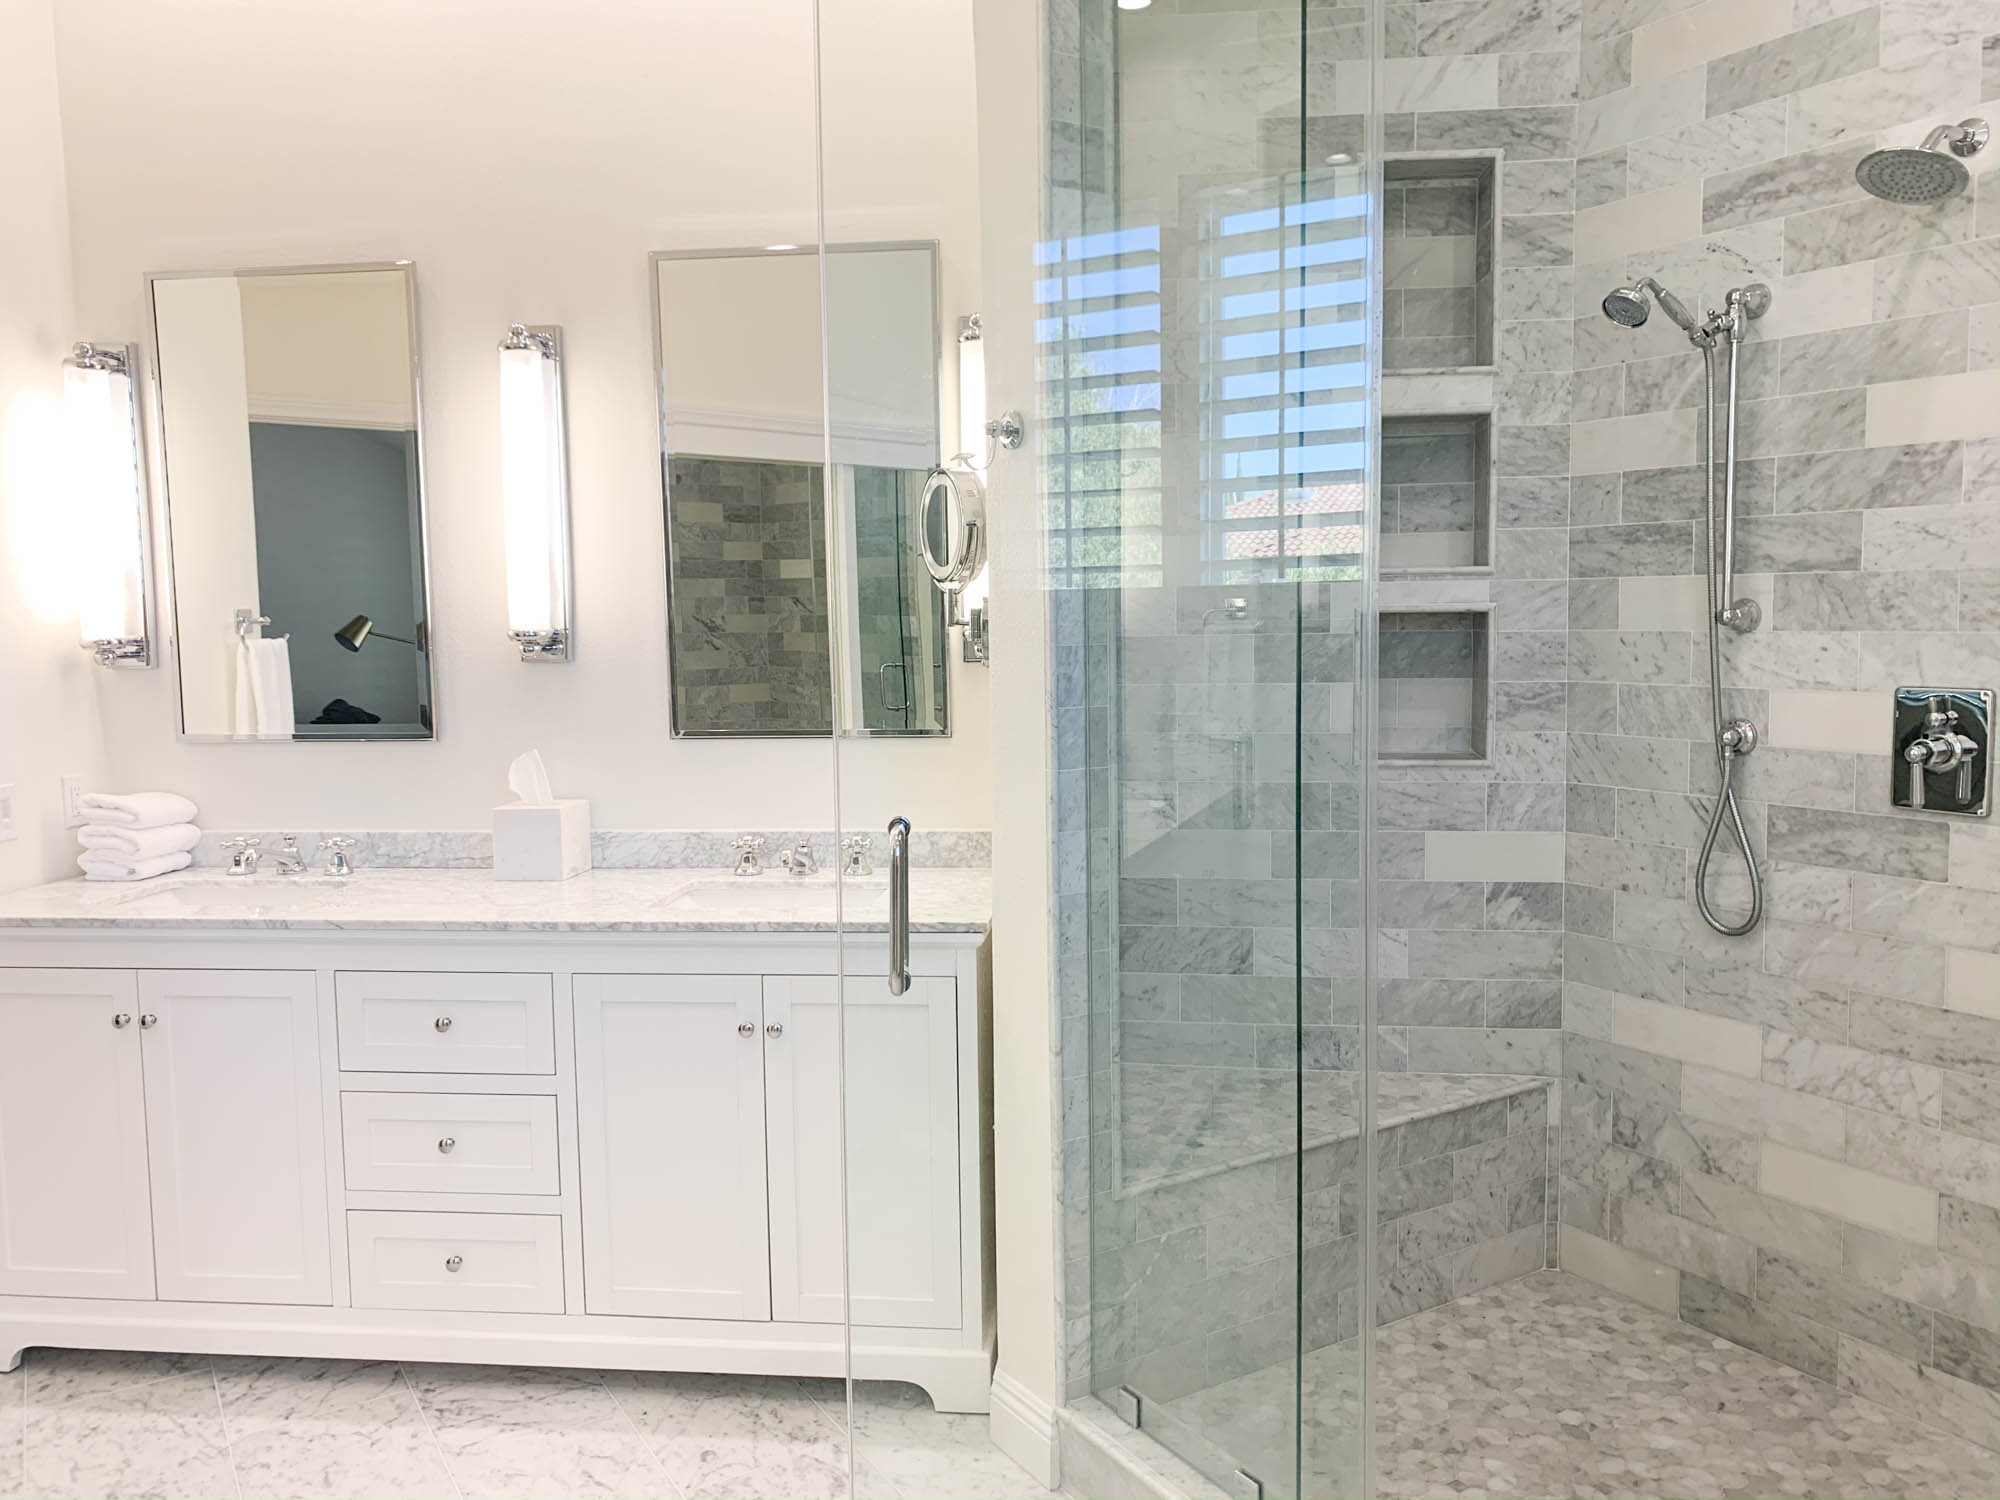 Primary Bathroom Remodel in Thousand Oaks